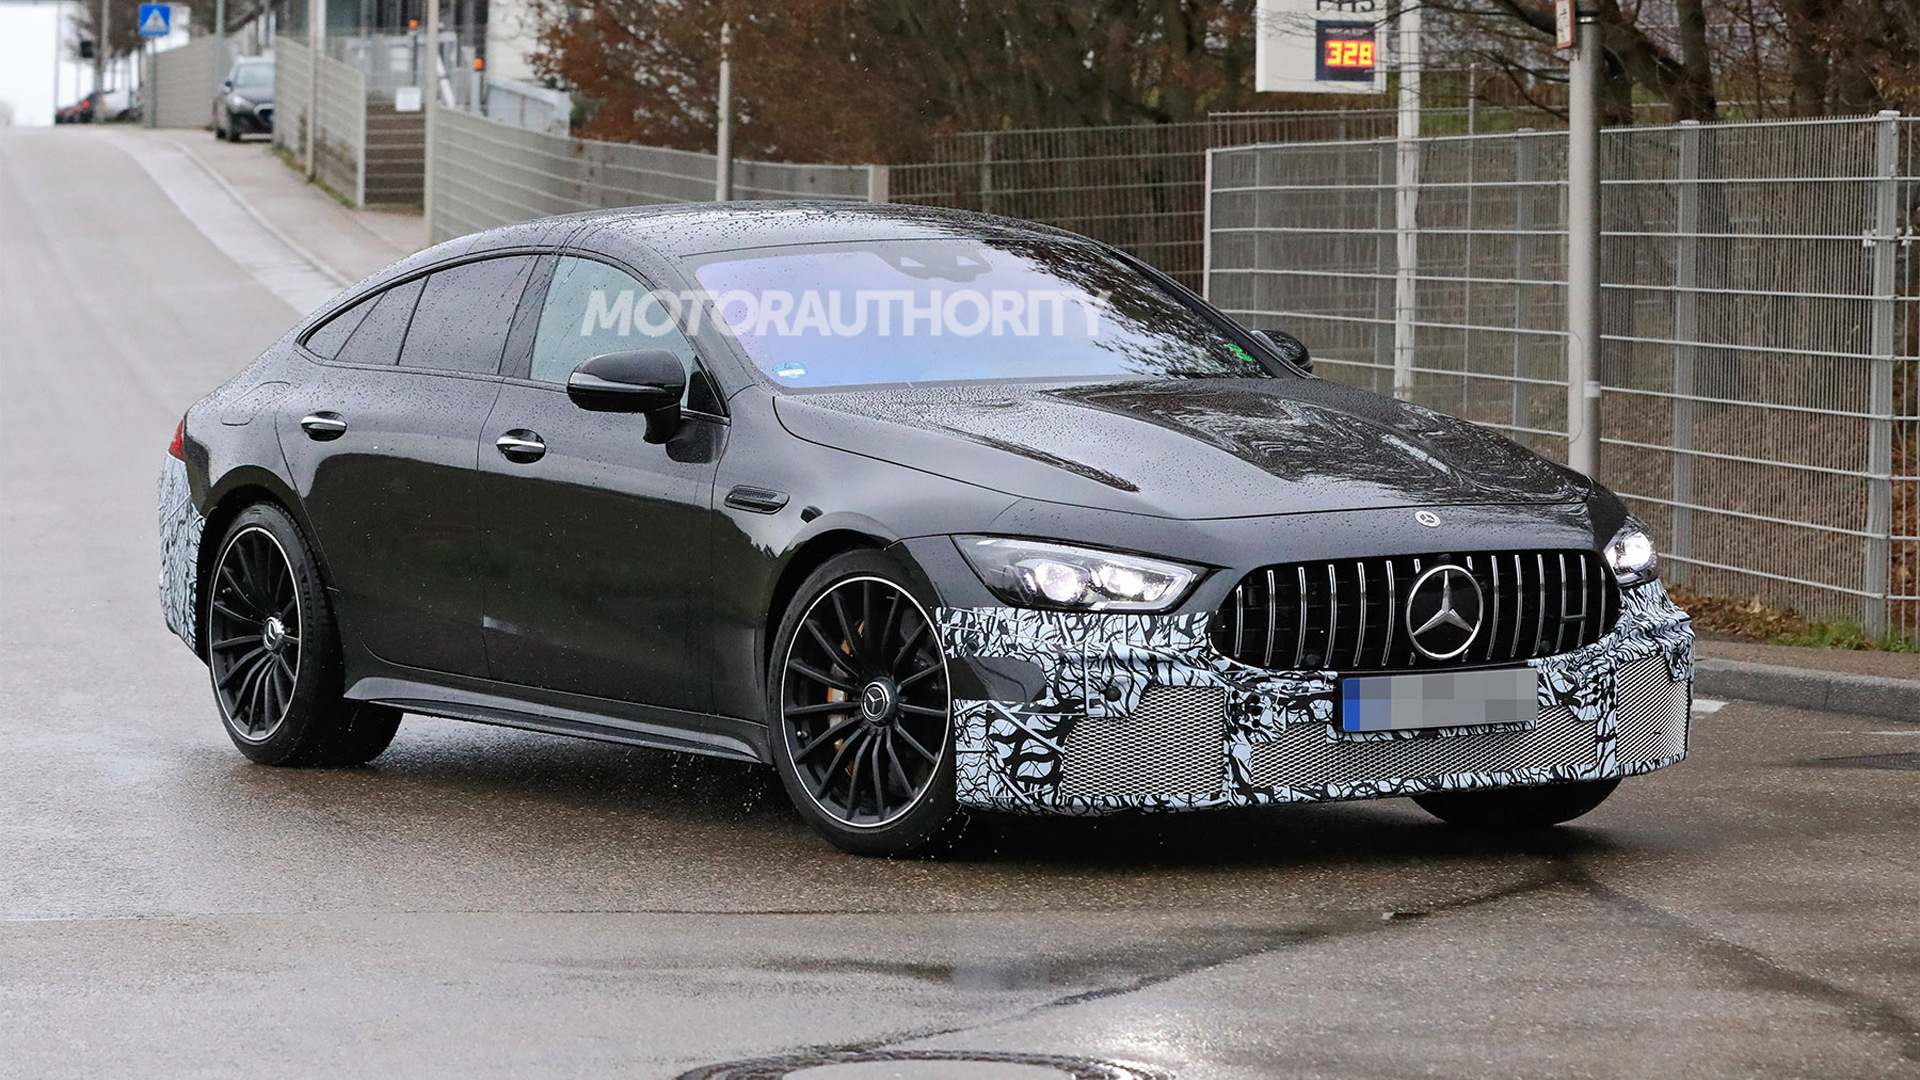 2022 Mercedes-Benz AMG GT 73e 4-Door Coupe spy shots - Photo credit: S. Baldauf/SB-Medien